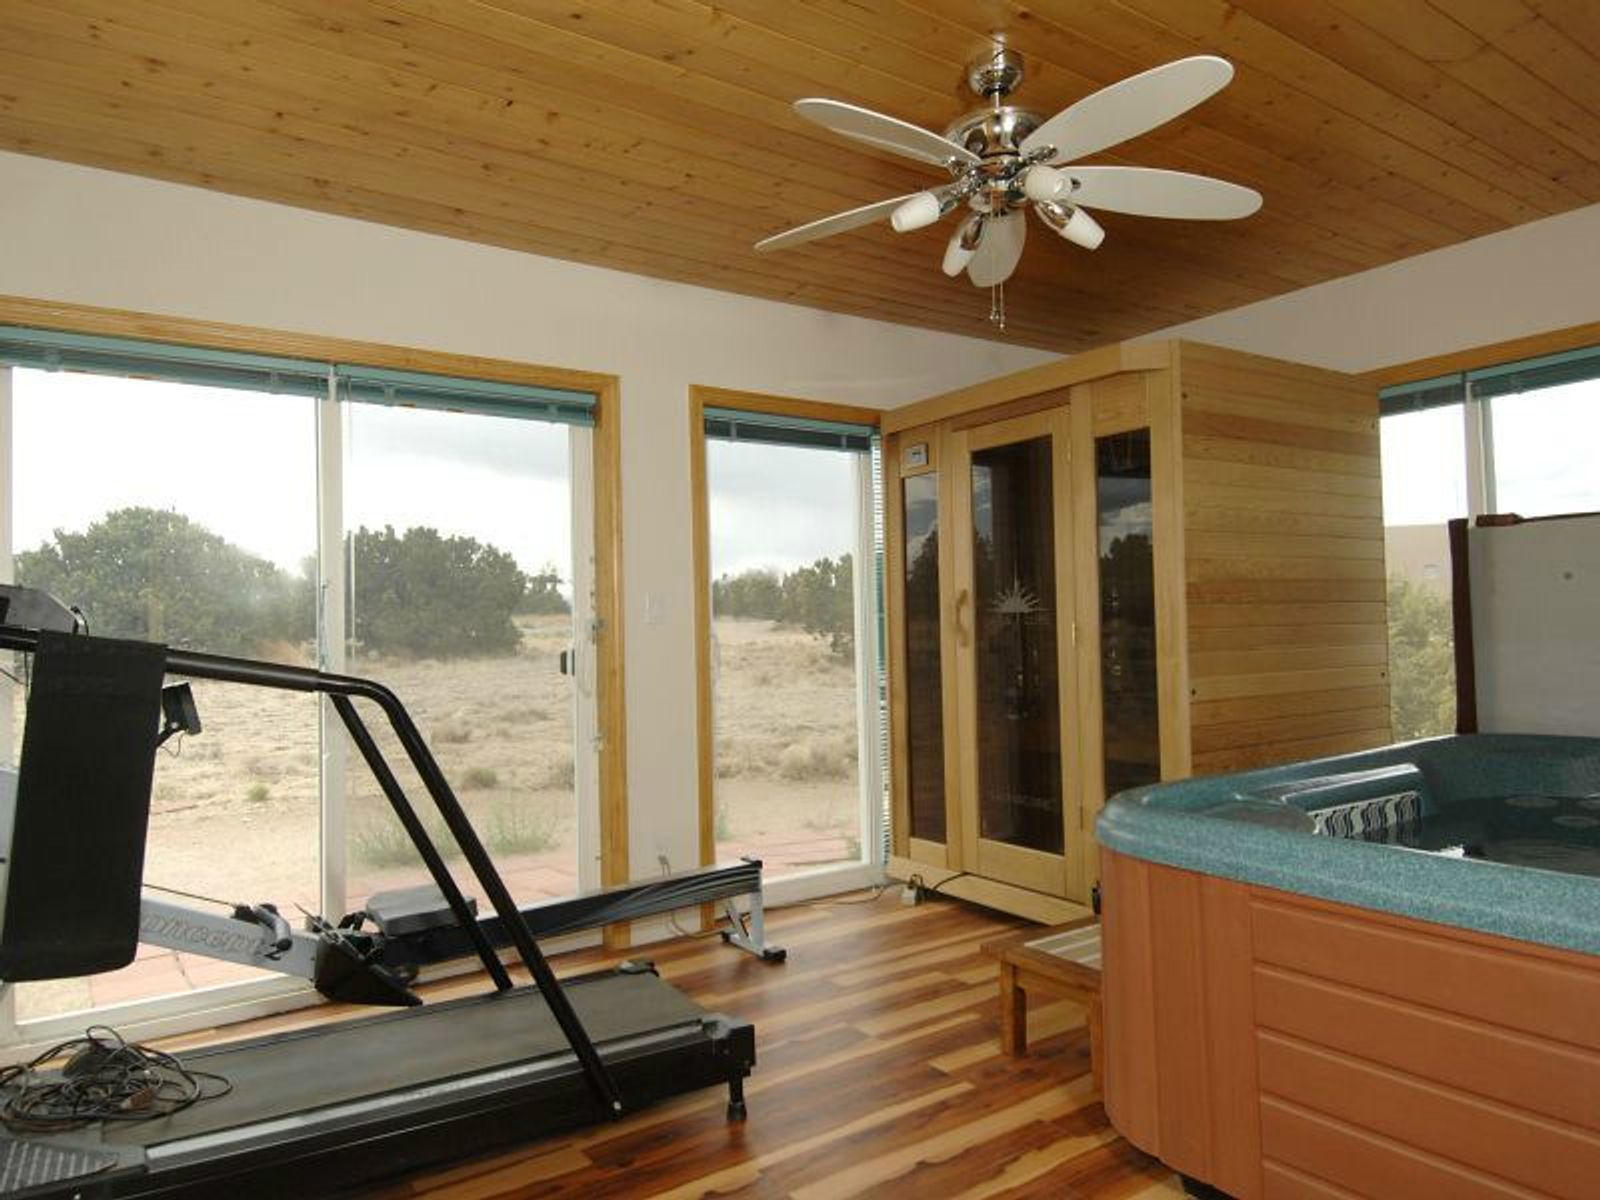 Workout/Studio/Office/Hot Tub Room